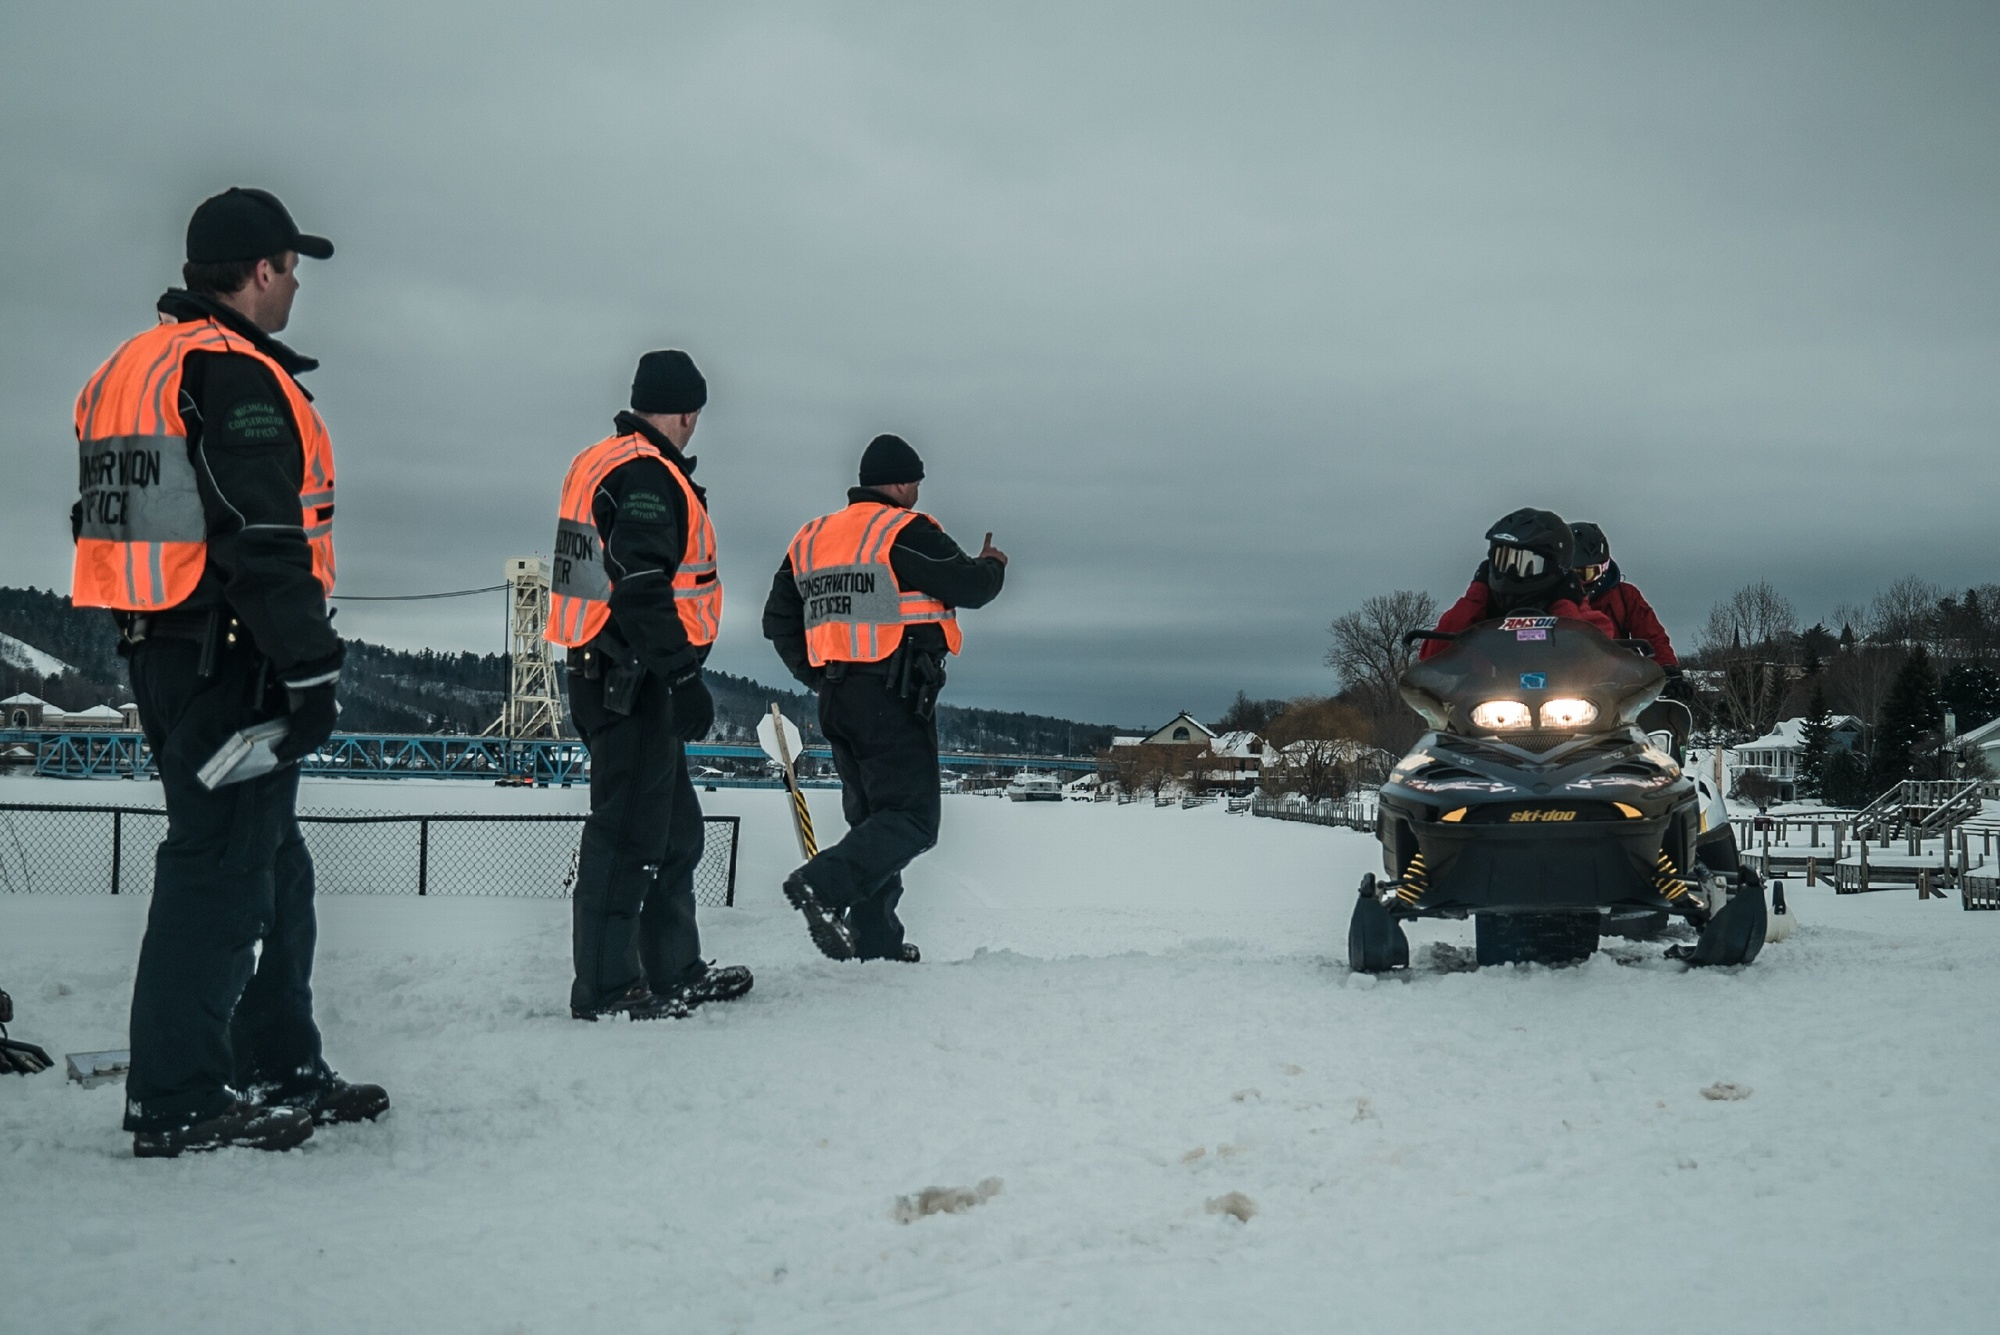 Michigan Department of Natural Resources Conservation Officers working their recent joint snowmobile enforcement patrol in Houghton.